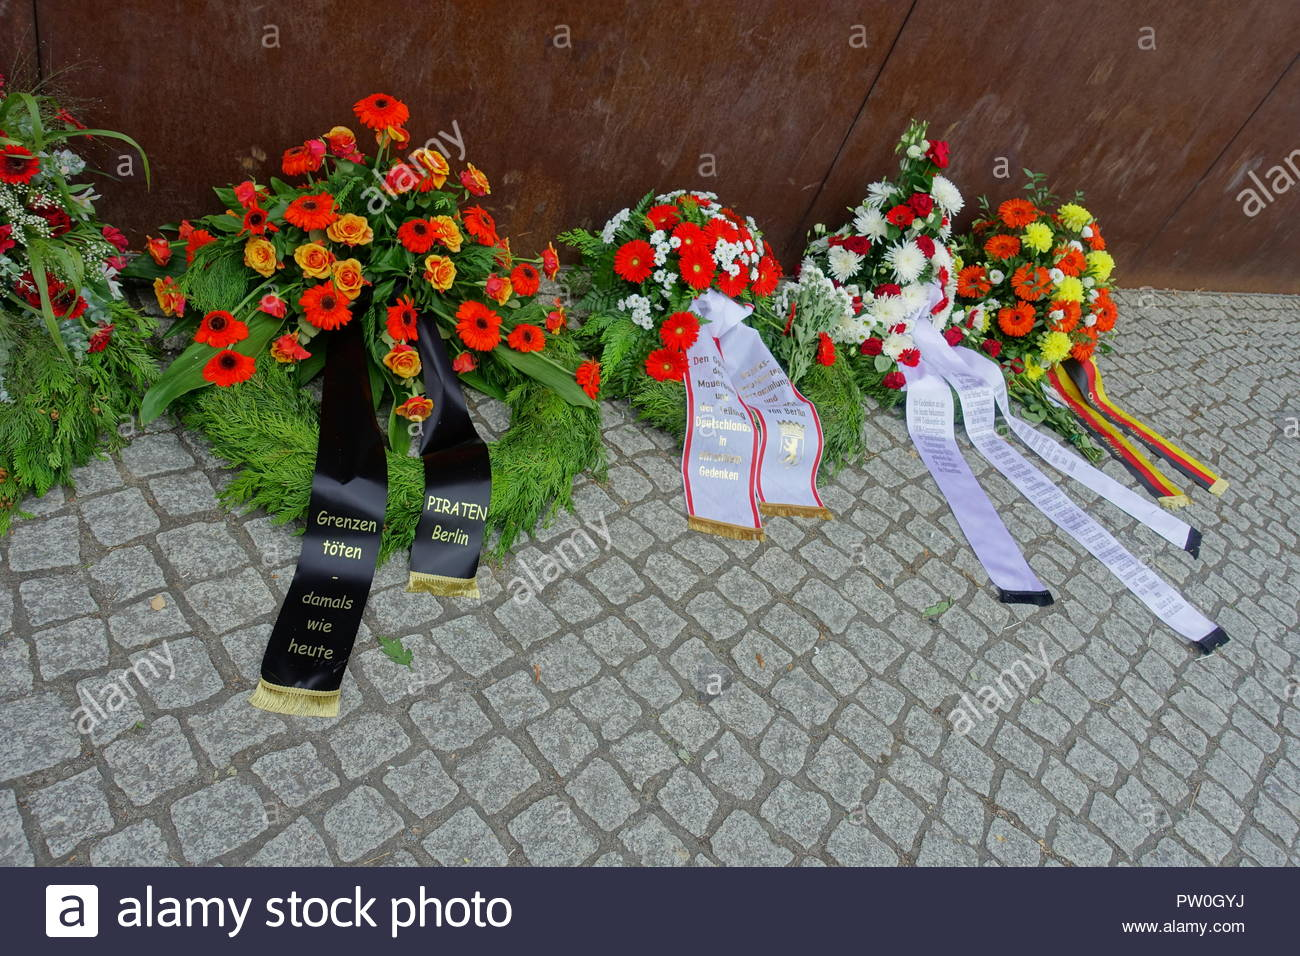 Berliner Mauer, Gedenken an die Maueropfer am 13.8.2018, Berlin Wall, Commemoration for the Victims of the Berlin Wall on August 13, 2018 - Stock Image